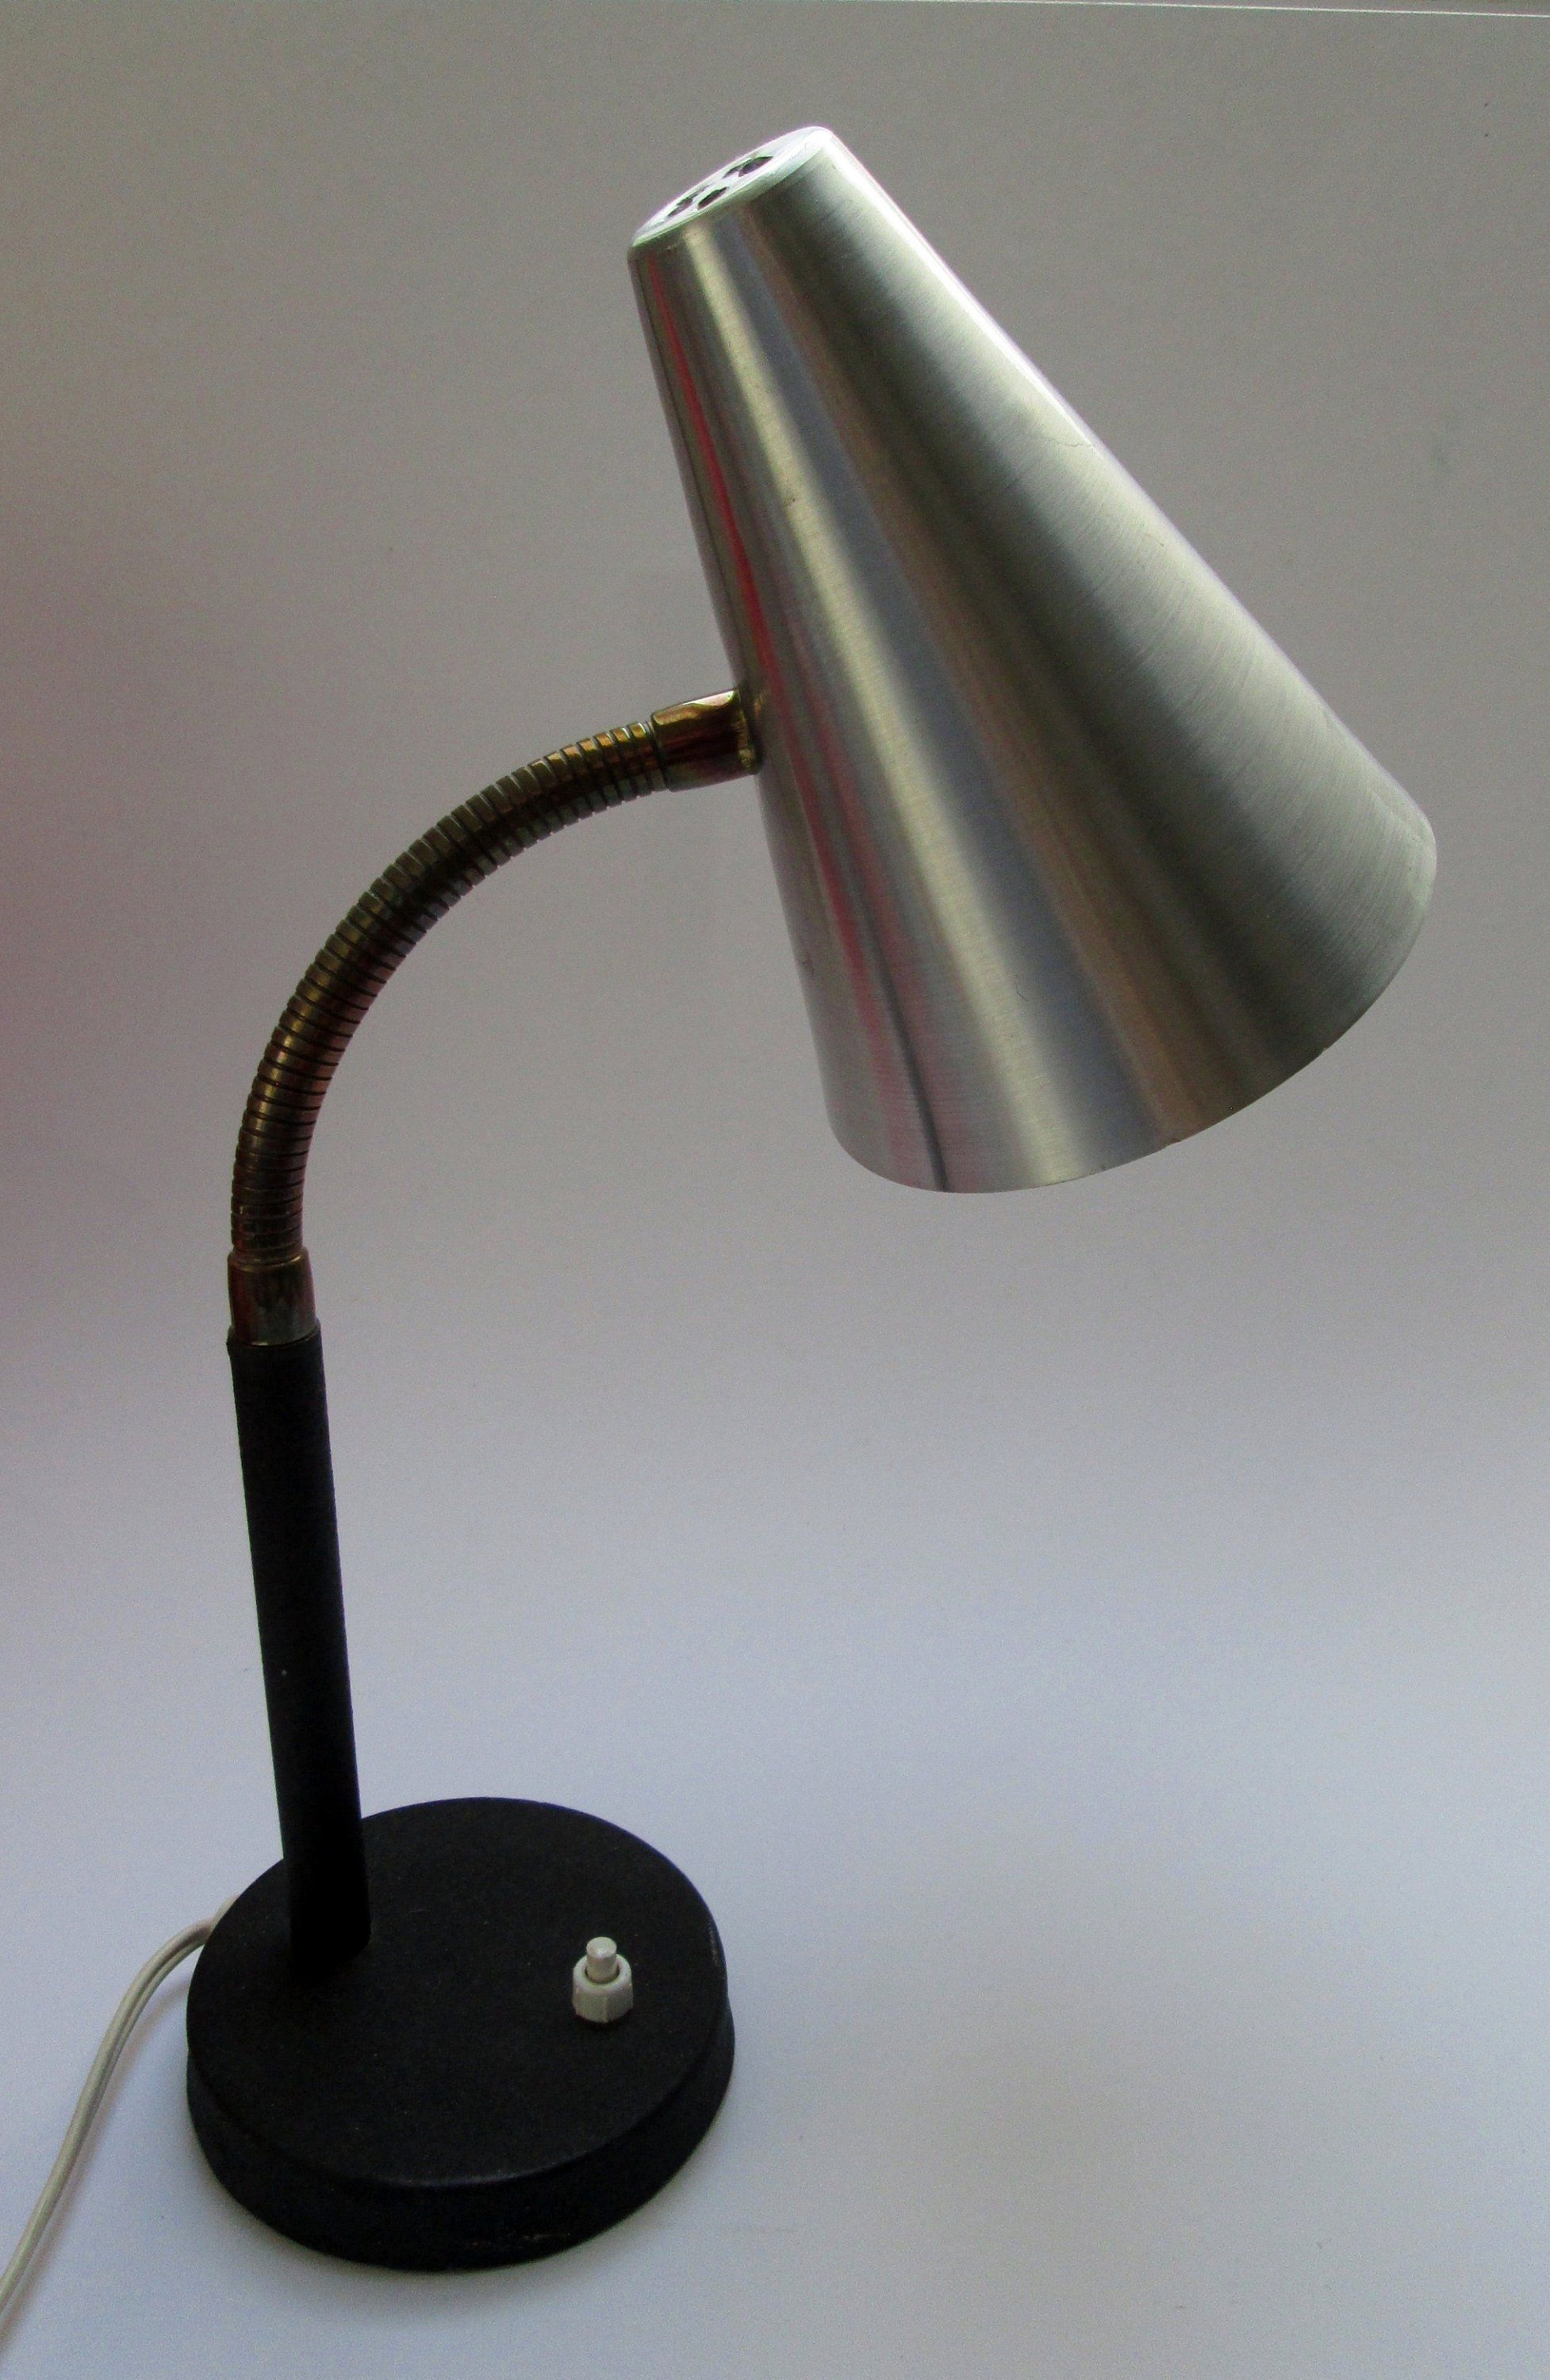 1960s Mid Century Vintage Danish Desk Lamp Also Wall Lamp In Black Brass And Aluminium 110 And Or 220 Volt Vintage Danish Desk Desk Lamp Lamp